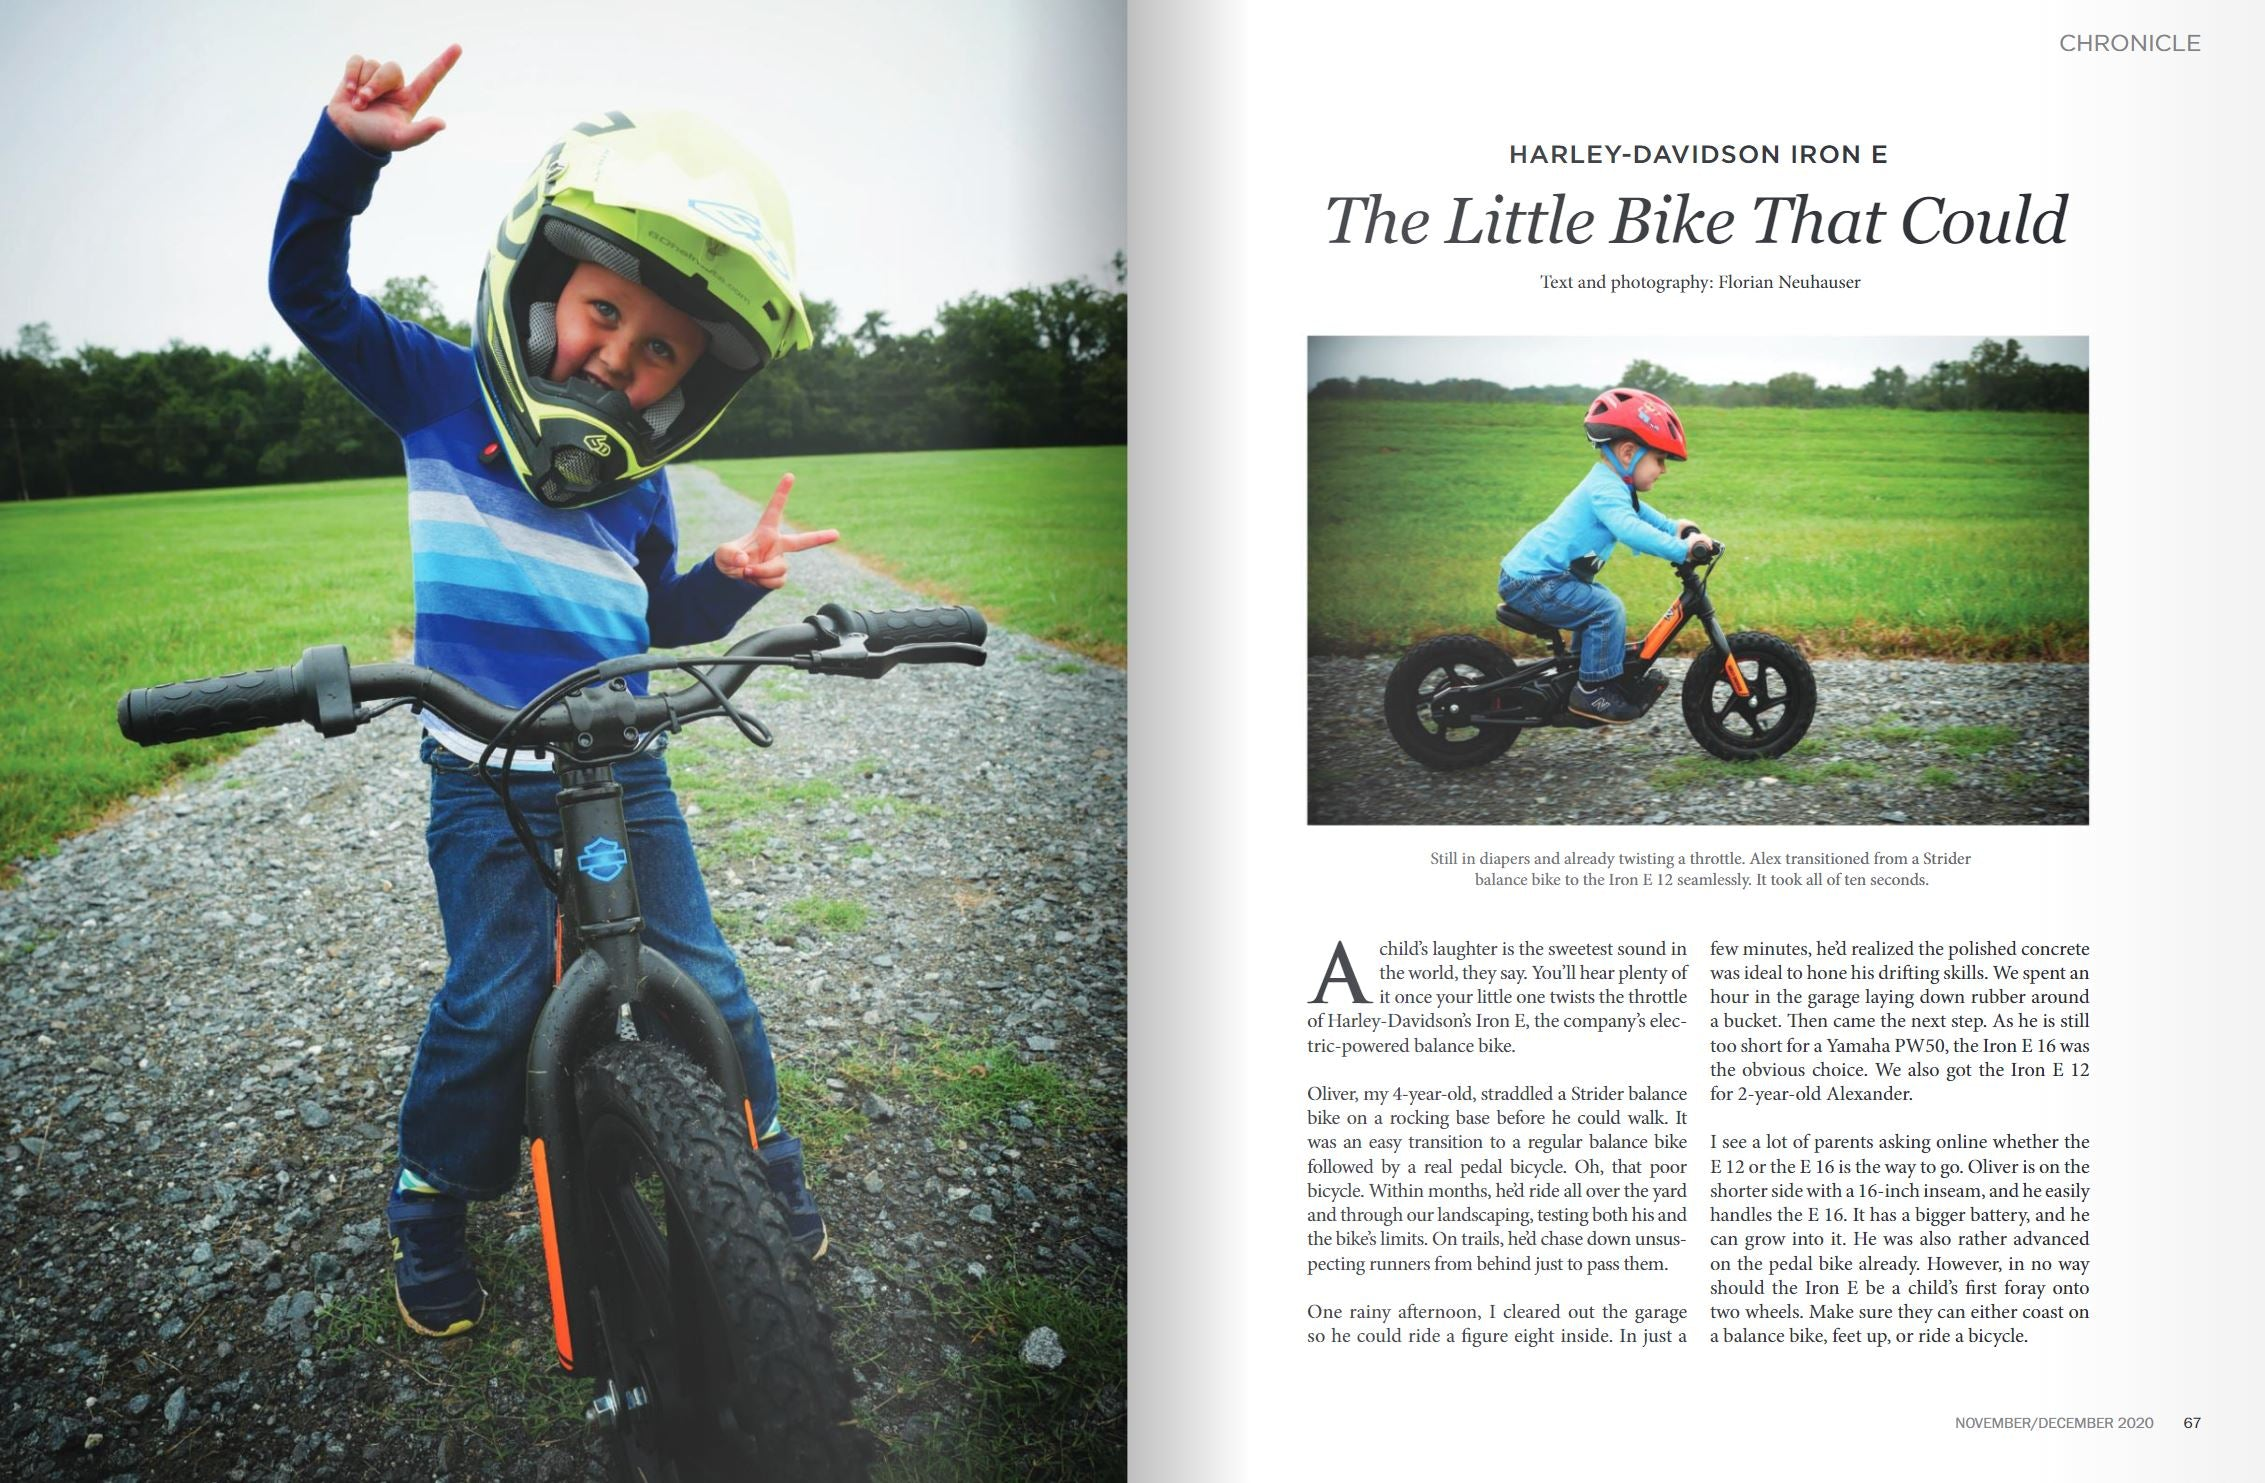 RoadRunner Motorcycle - Harley-Davidson Iron E: The Little Bike That Could